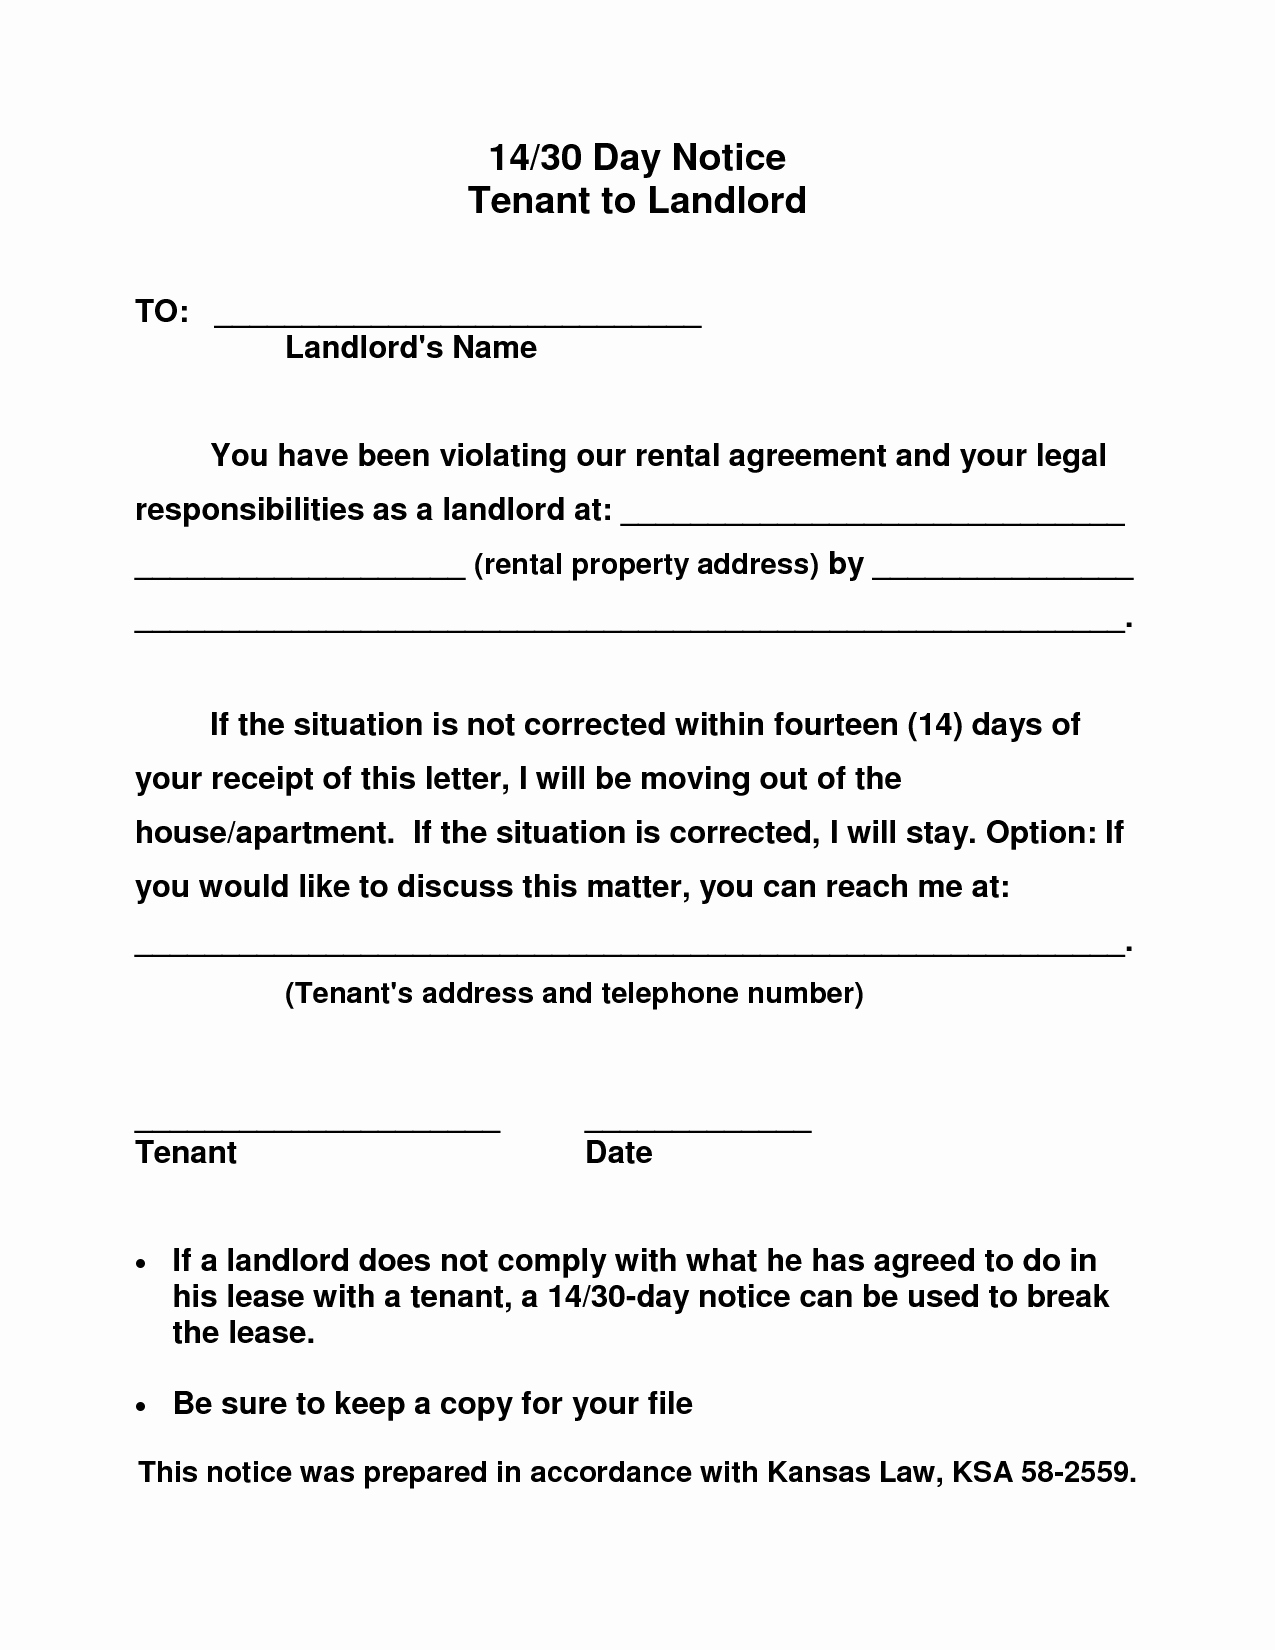 10 Best Of 30 Day Notice to Landlord Template